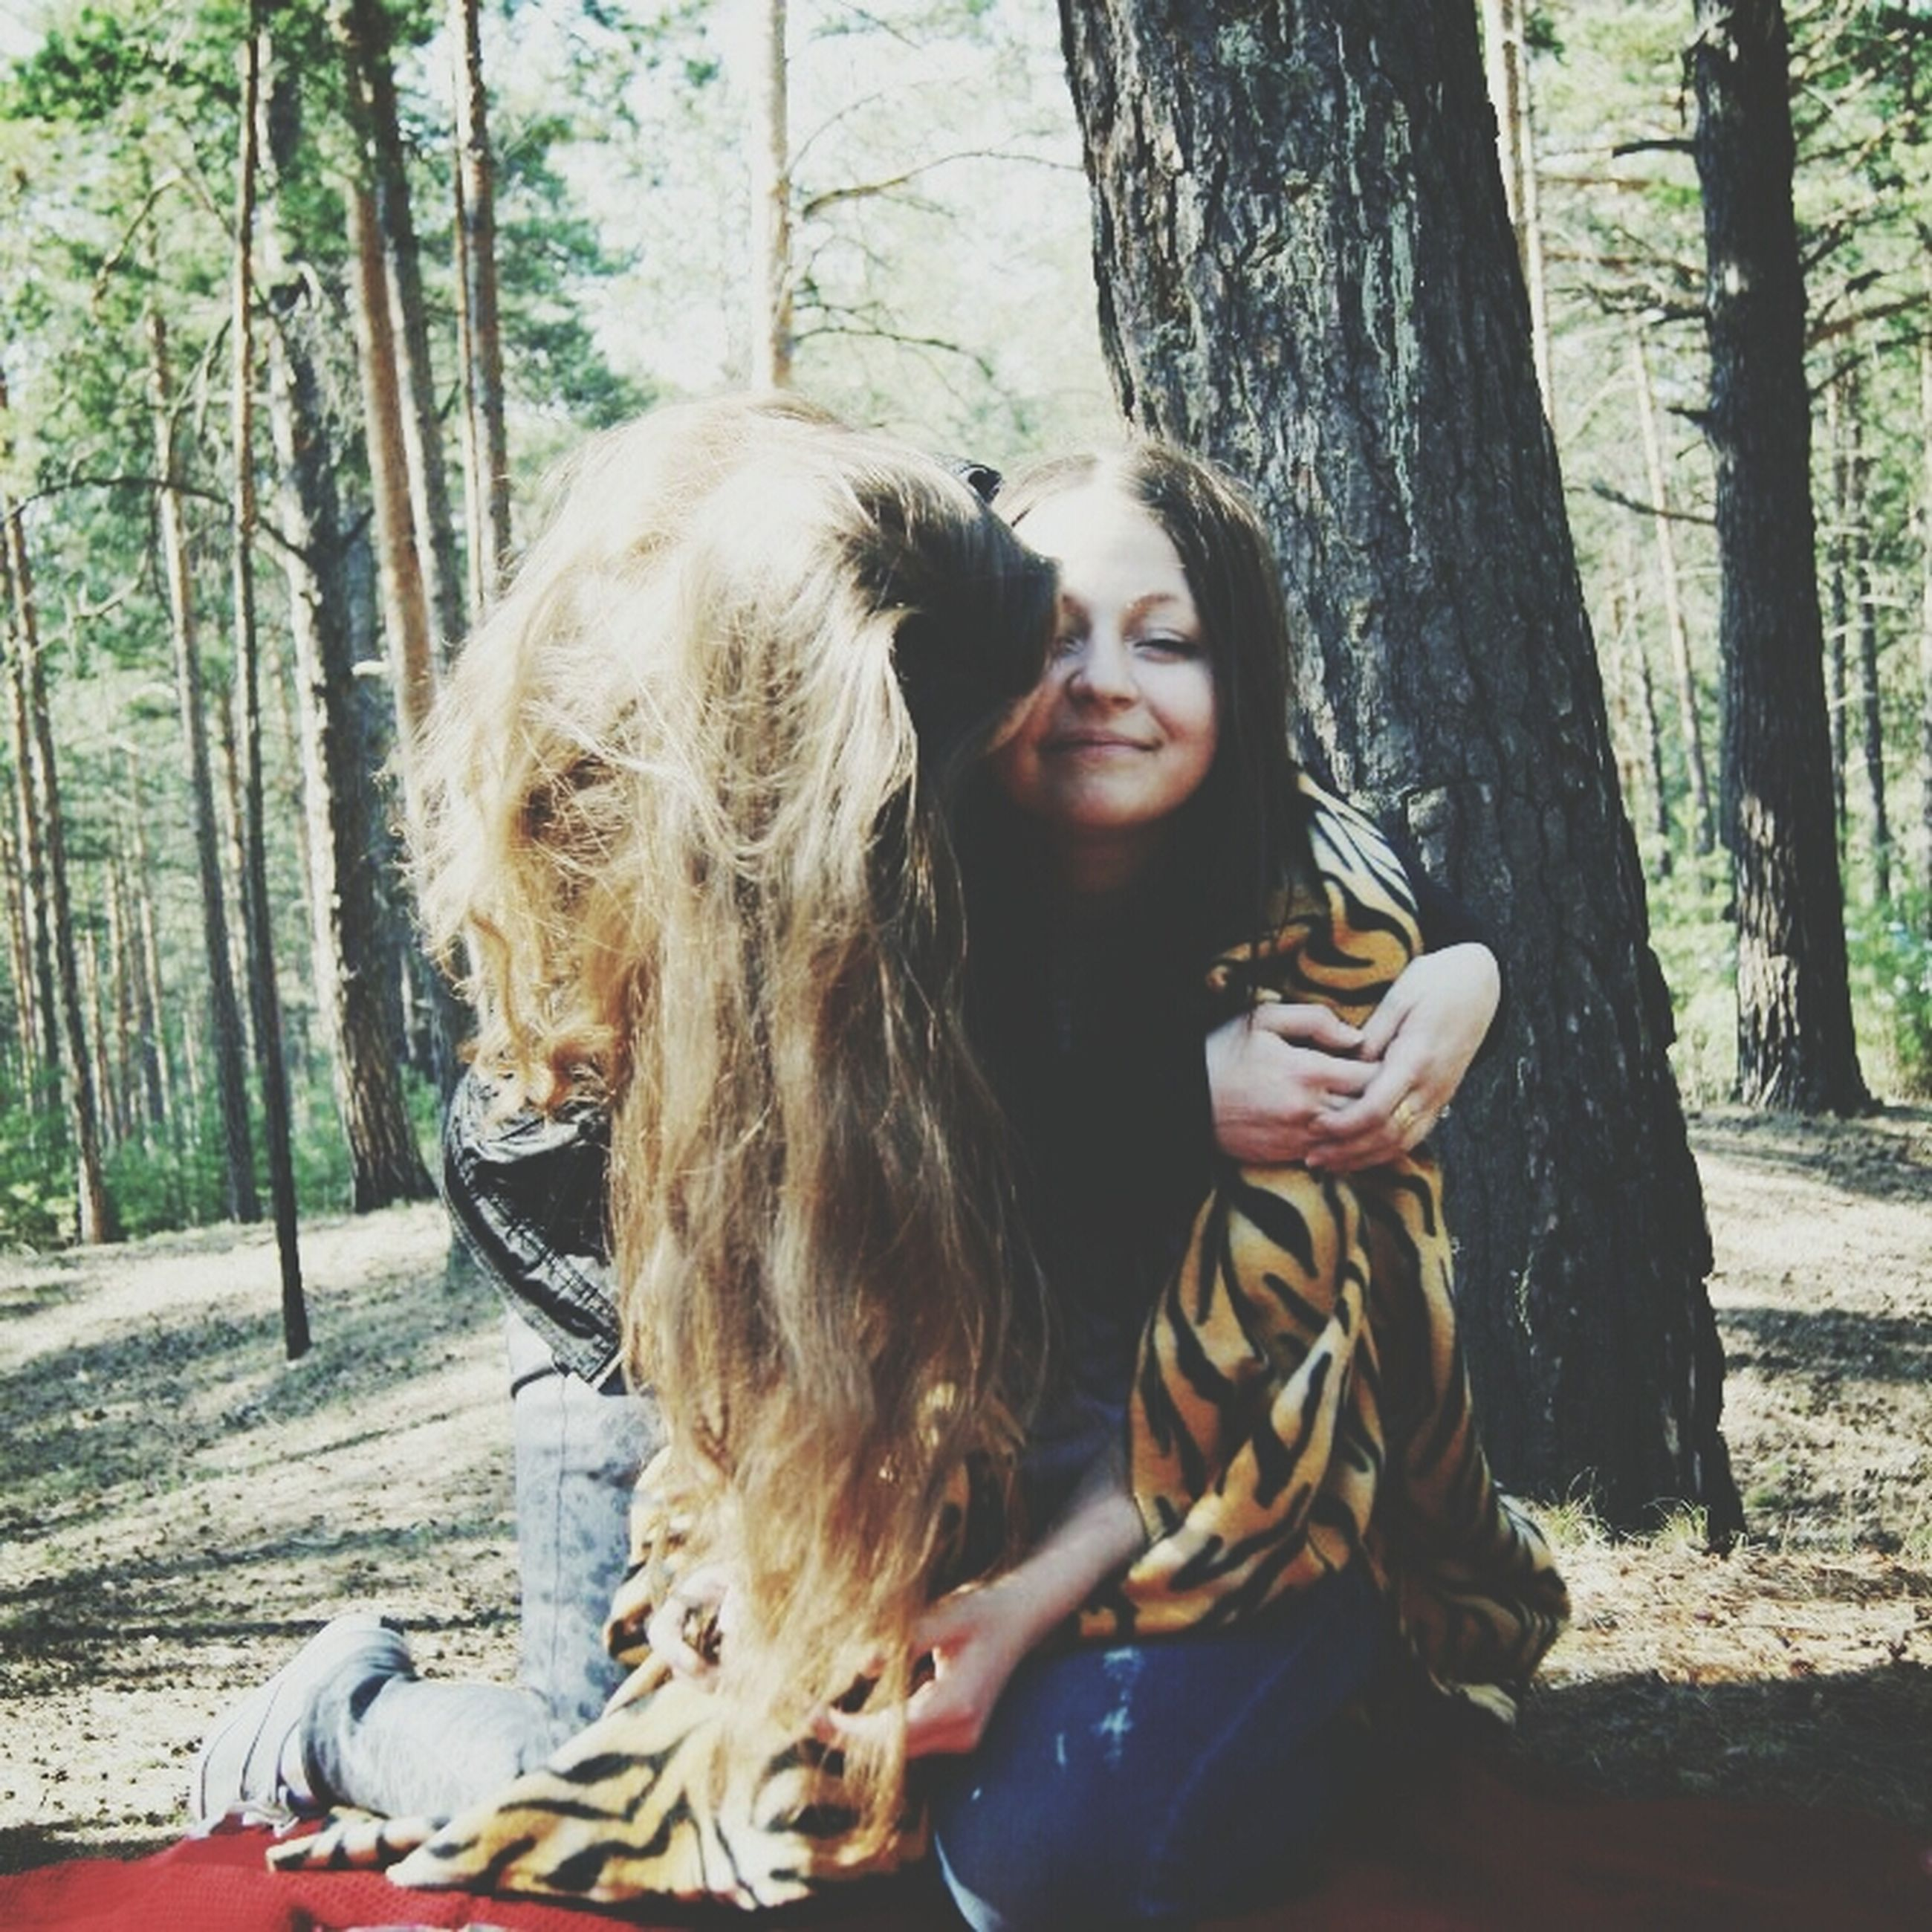 young adult, long hair, young women, person, tree, lifestyles, looking at camera, casual clothing, portrait, leisure activity, front view, smiling, tree trunk, brown hair, blond hair, day, outdoors